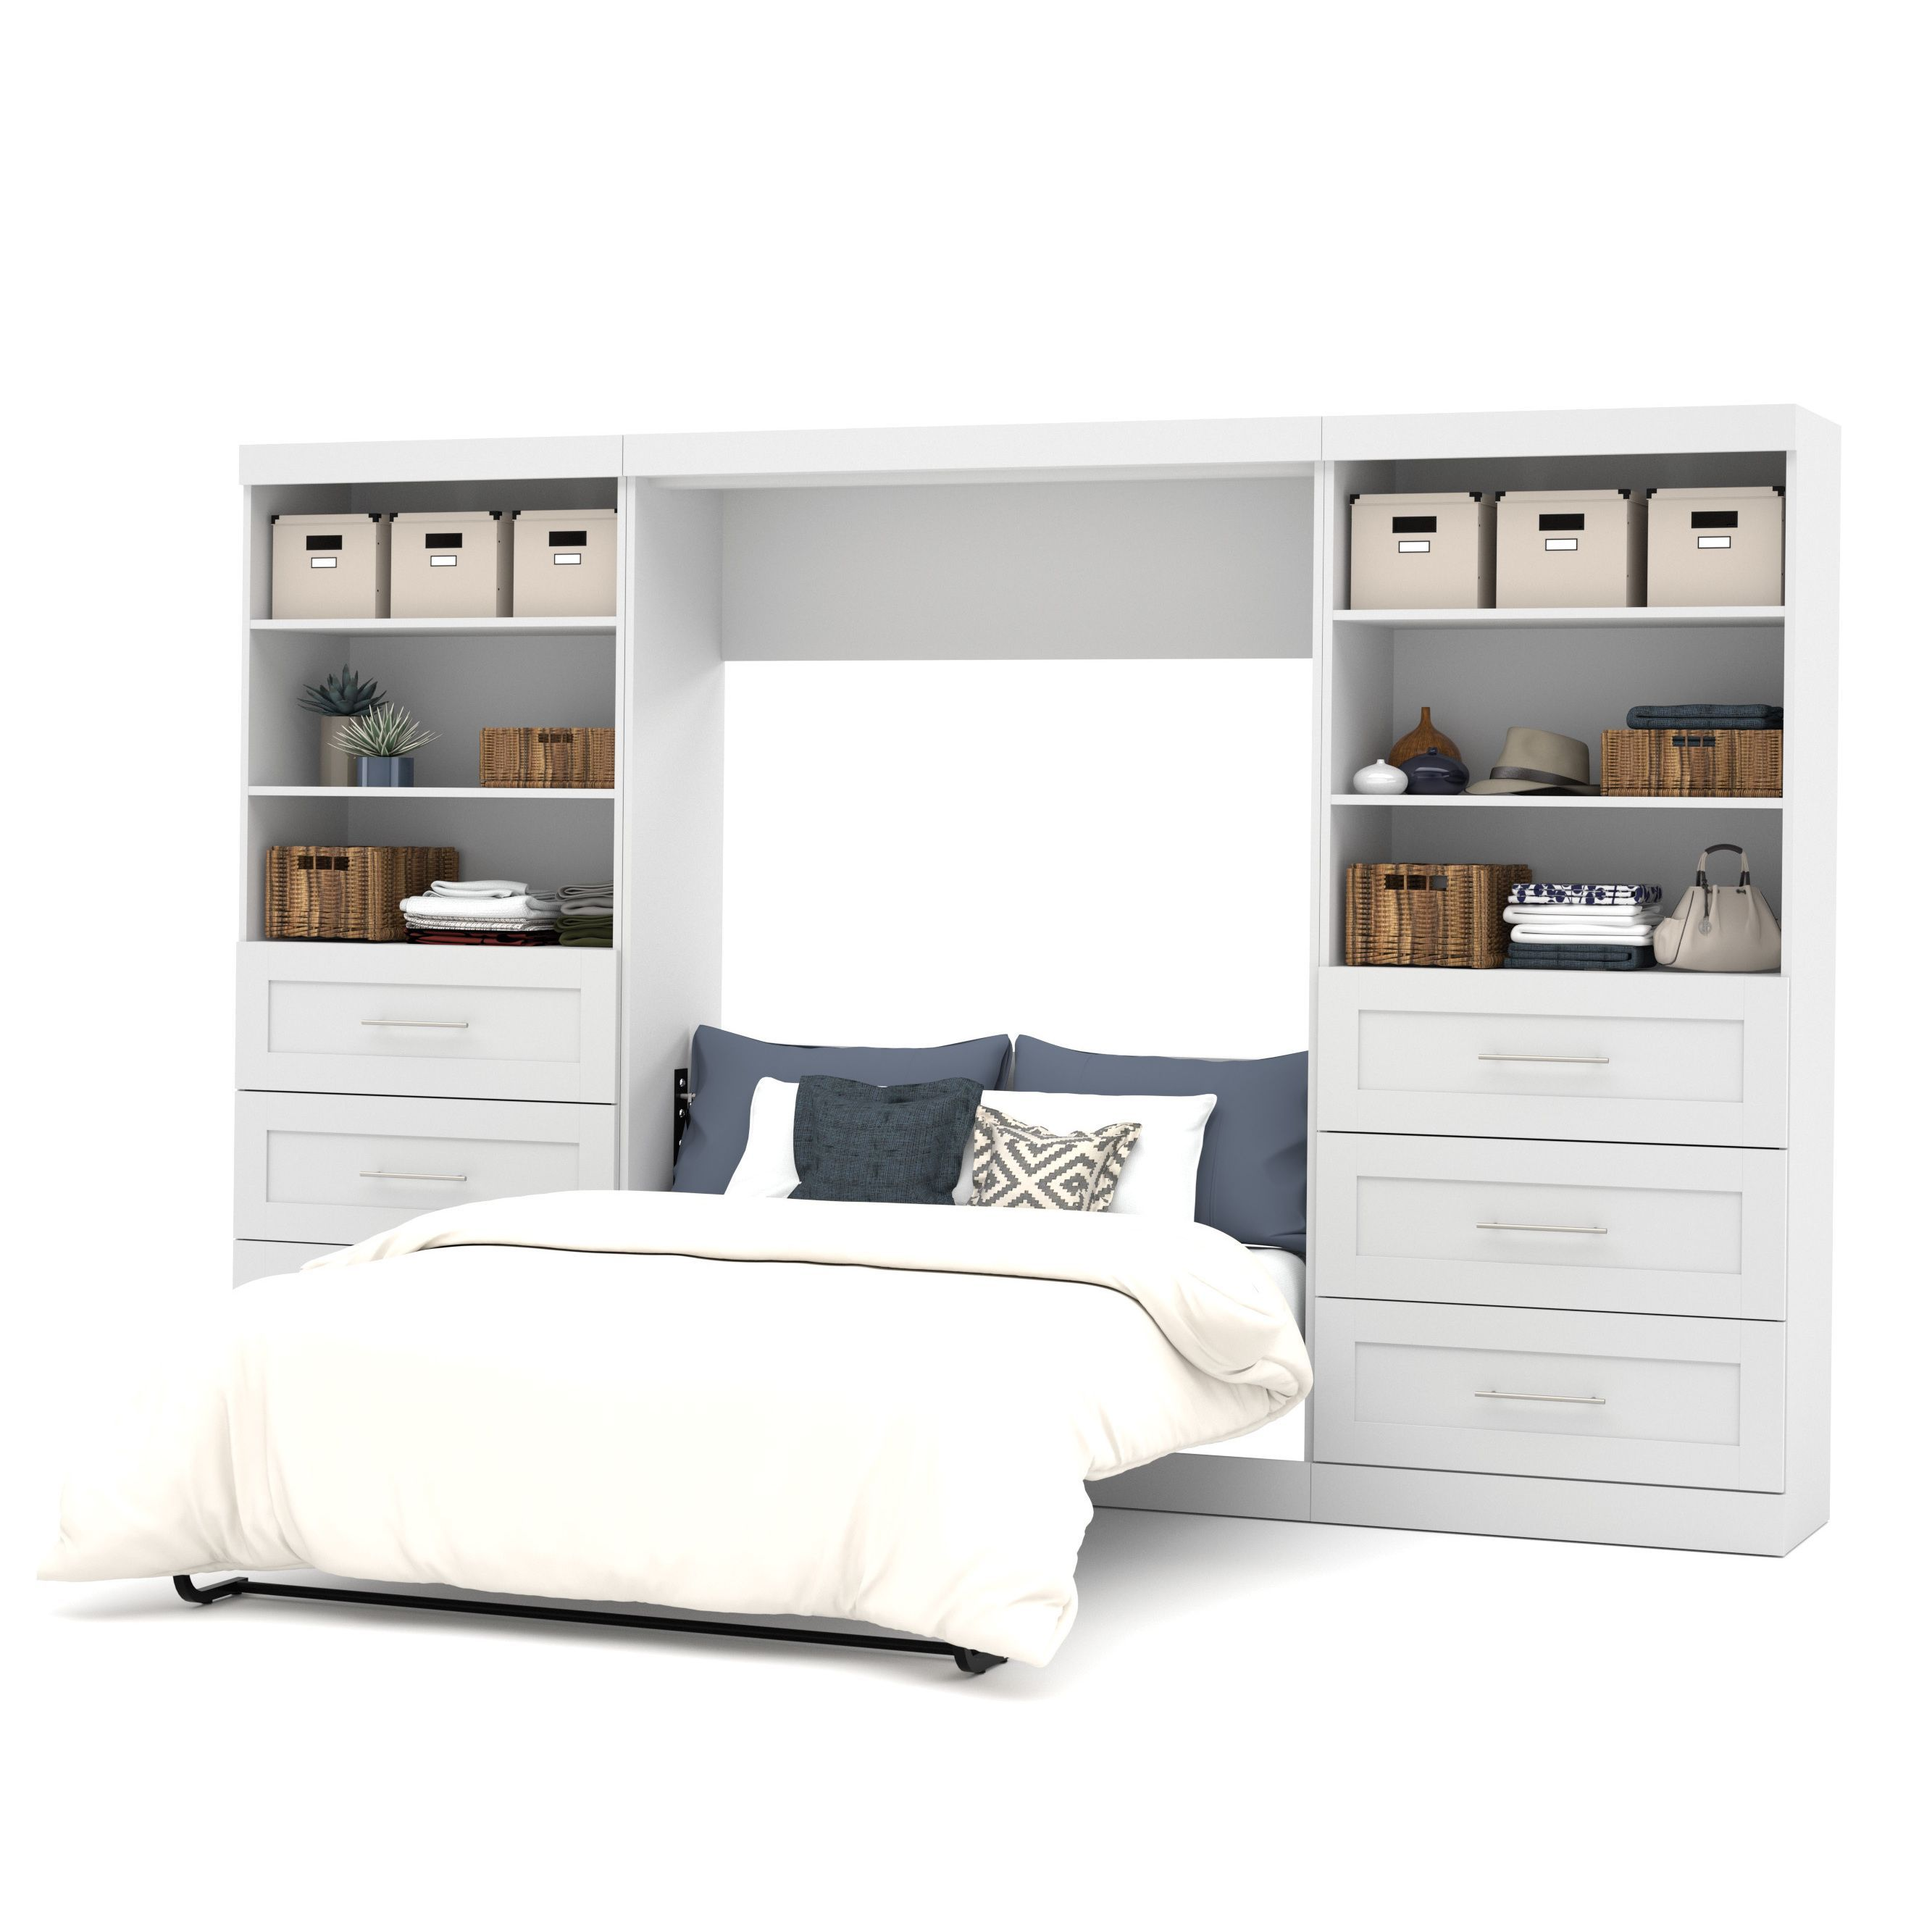 pur by bestar 131 full wall bed kit white modern on wall beds id=47021